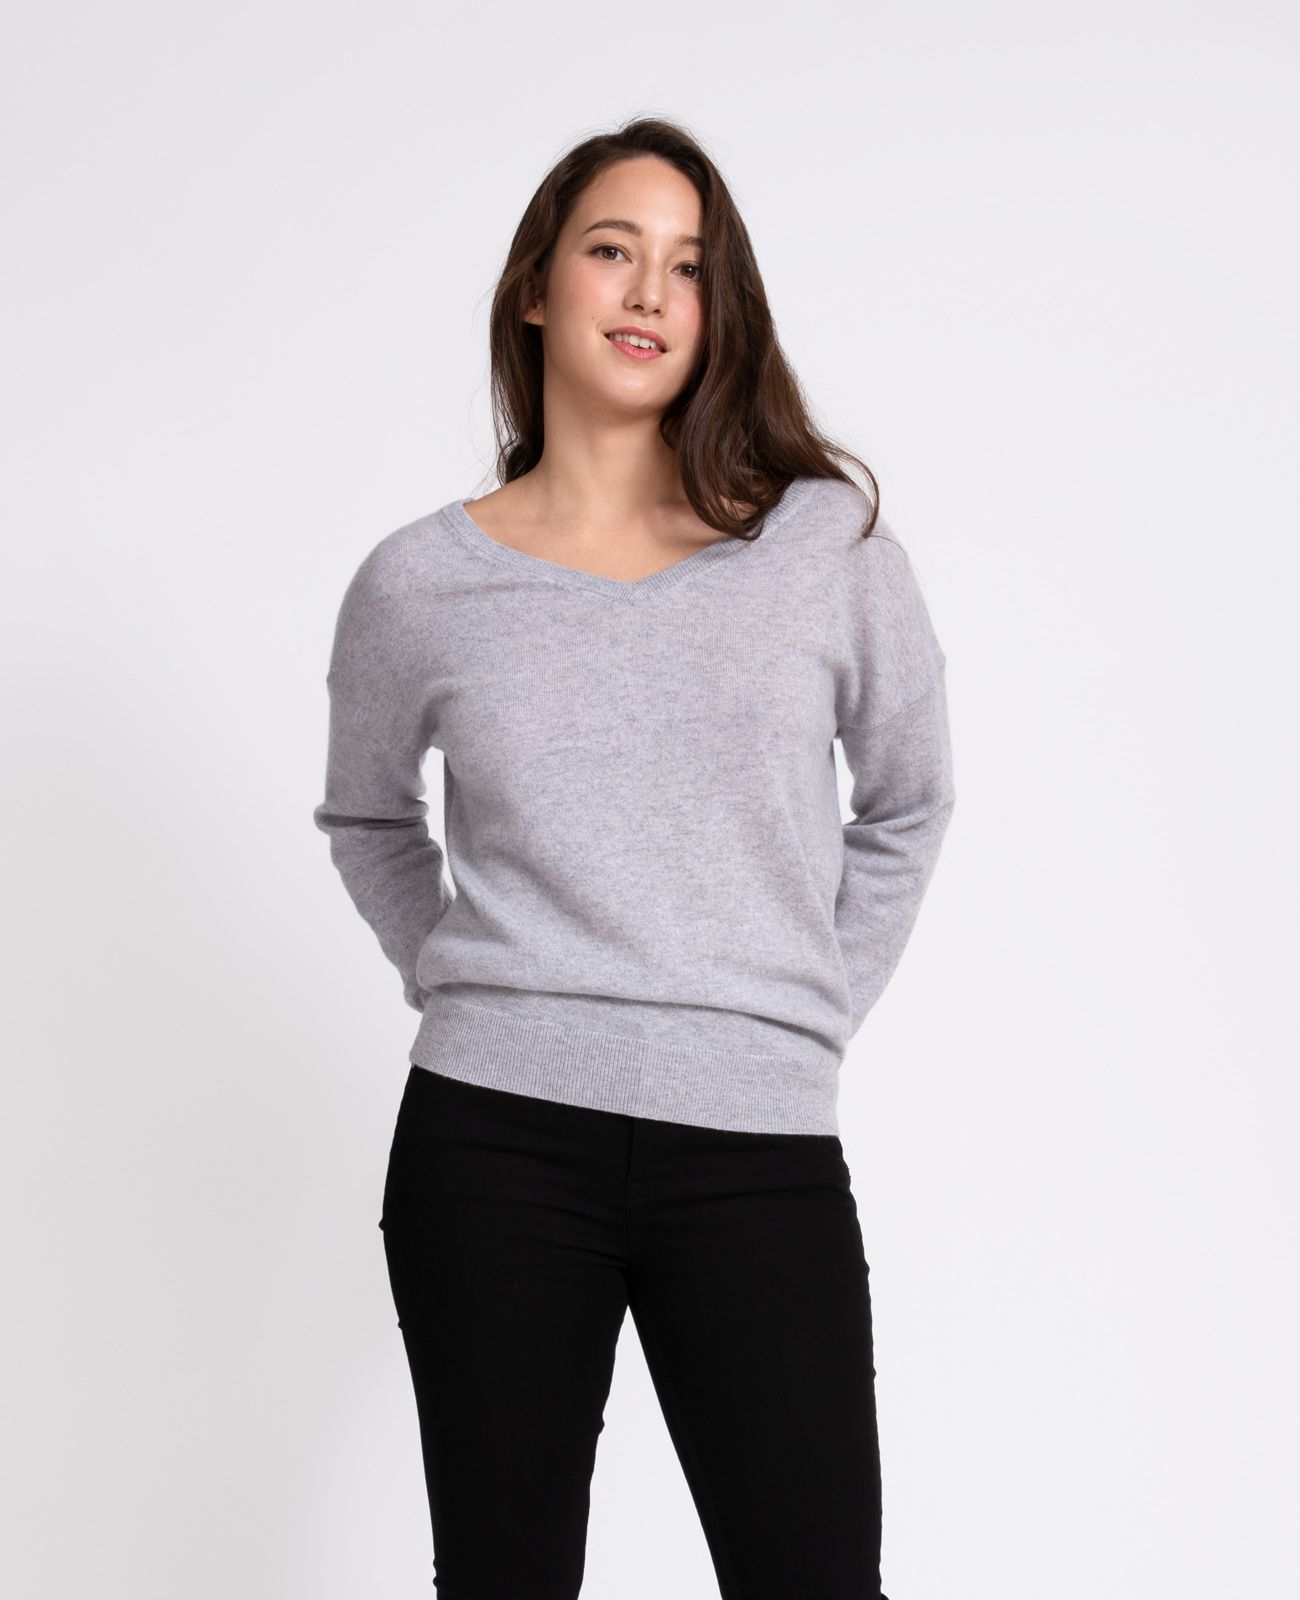 Beautiful Express Womens V-neck Sweater Size Xs Sweaters Women's Clothing